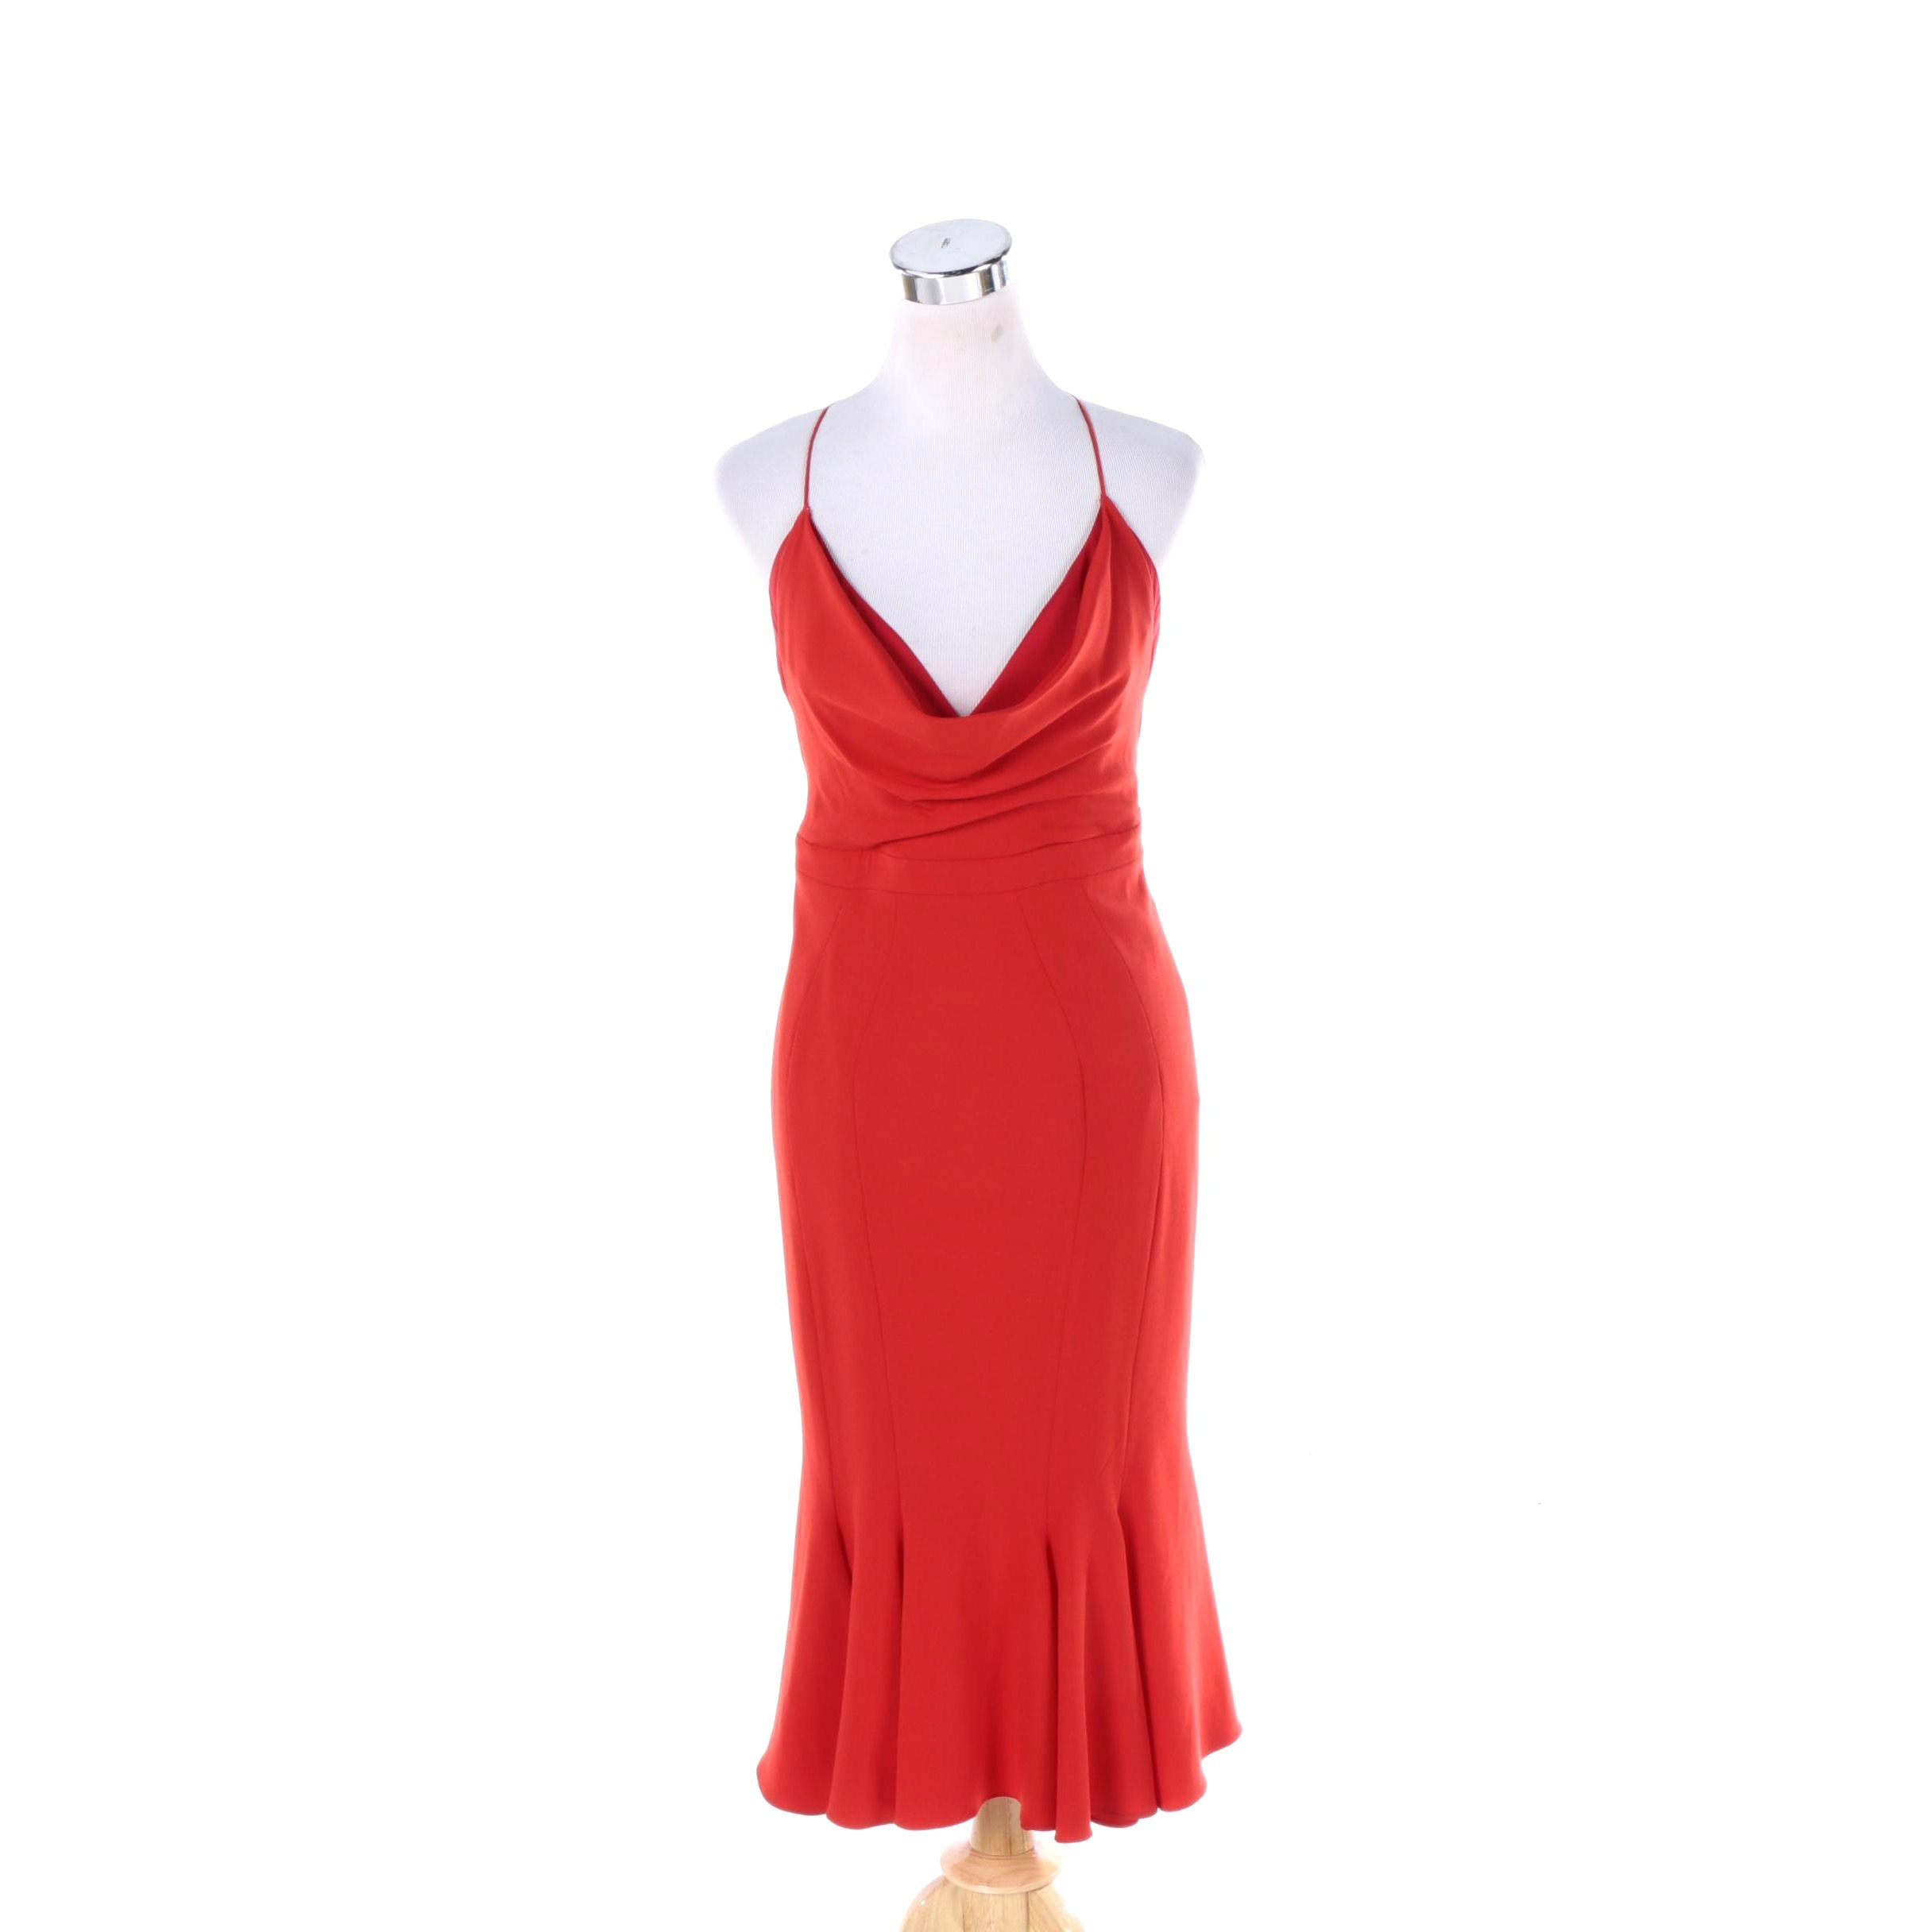 Women's ZAC Zac Posen Scarlet Cowl Neck Flared Sheath Dress